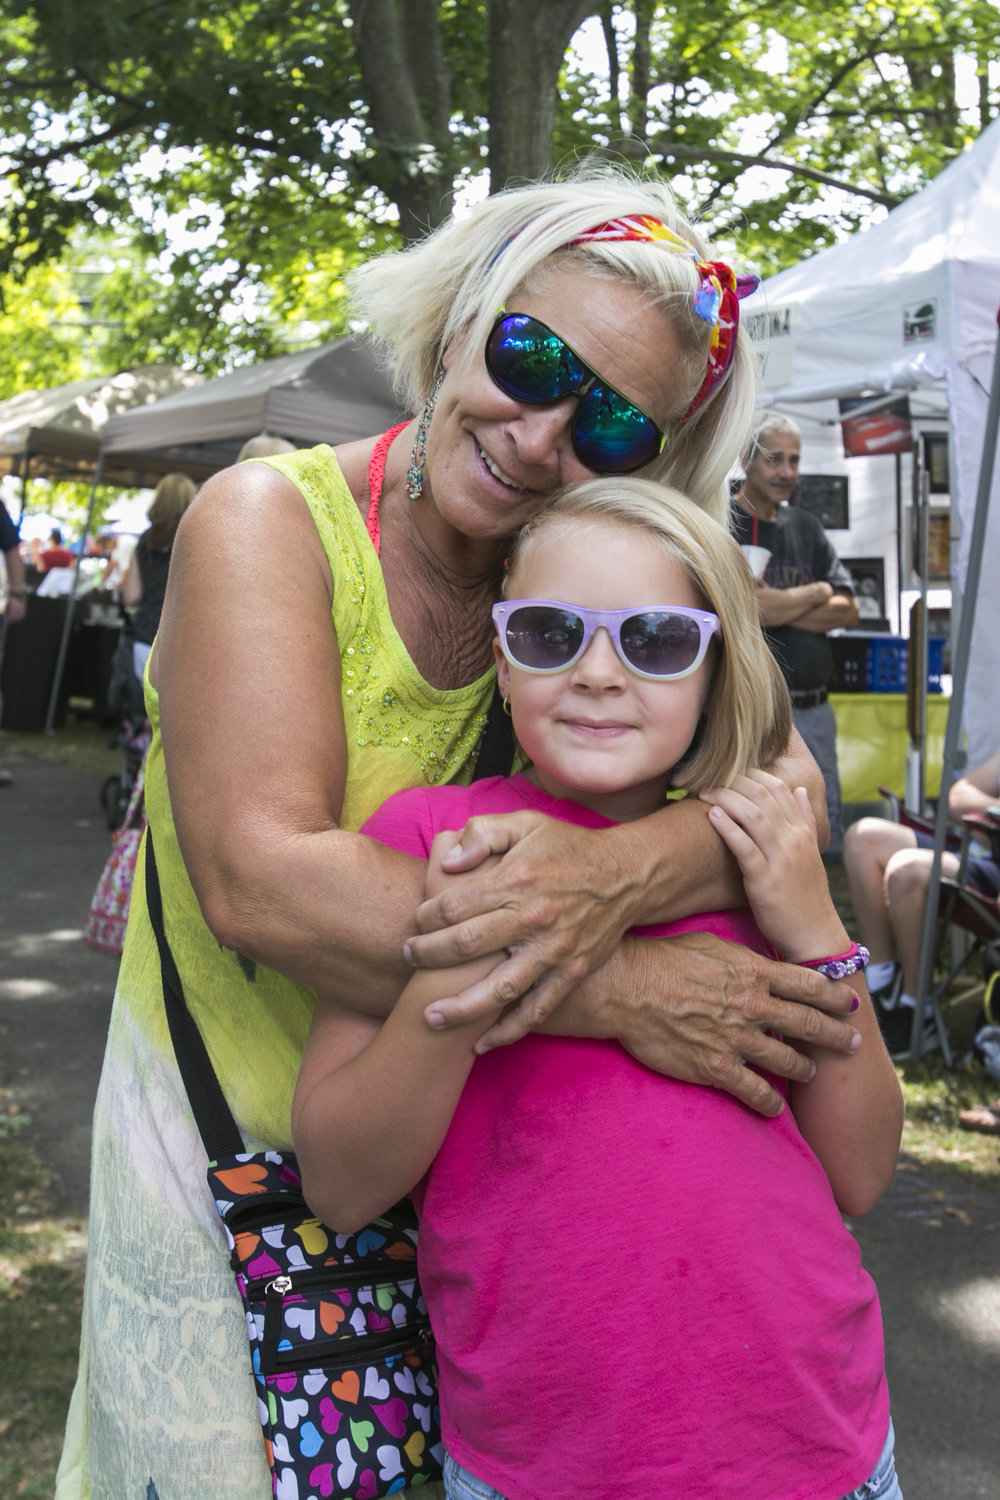 Nancy Bryce and her 8 year-old granddaughter Zoe enjoy their time at the festival.